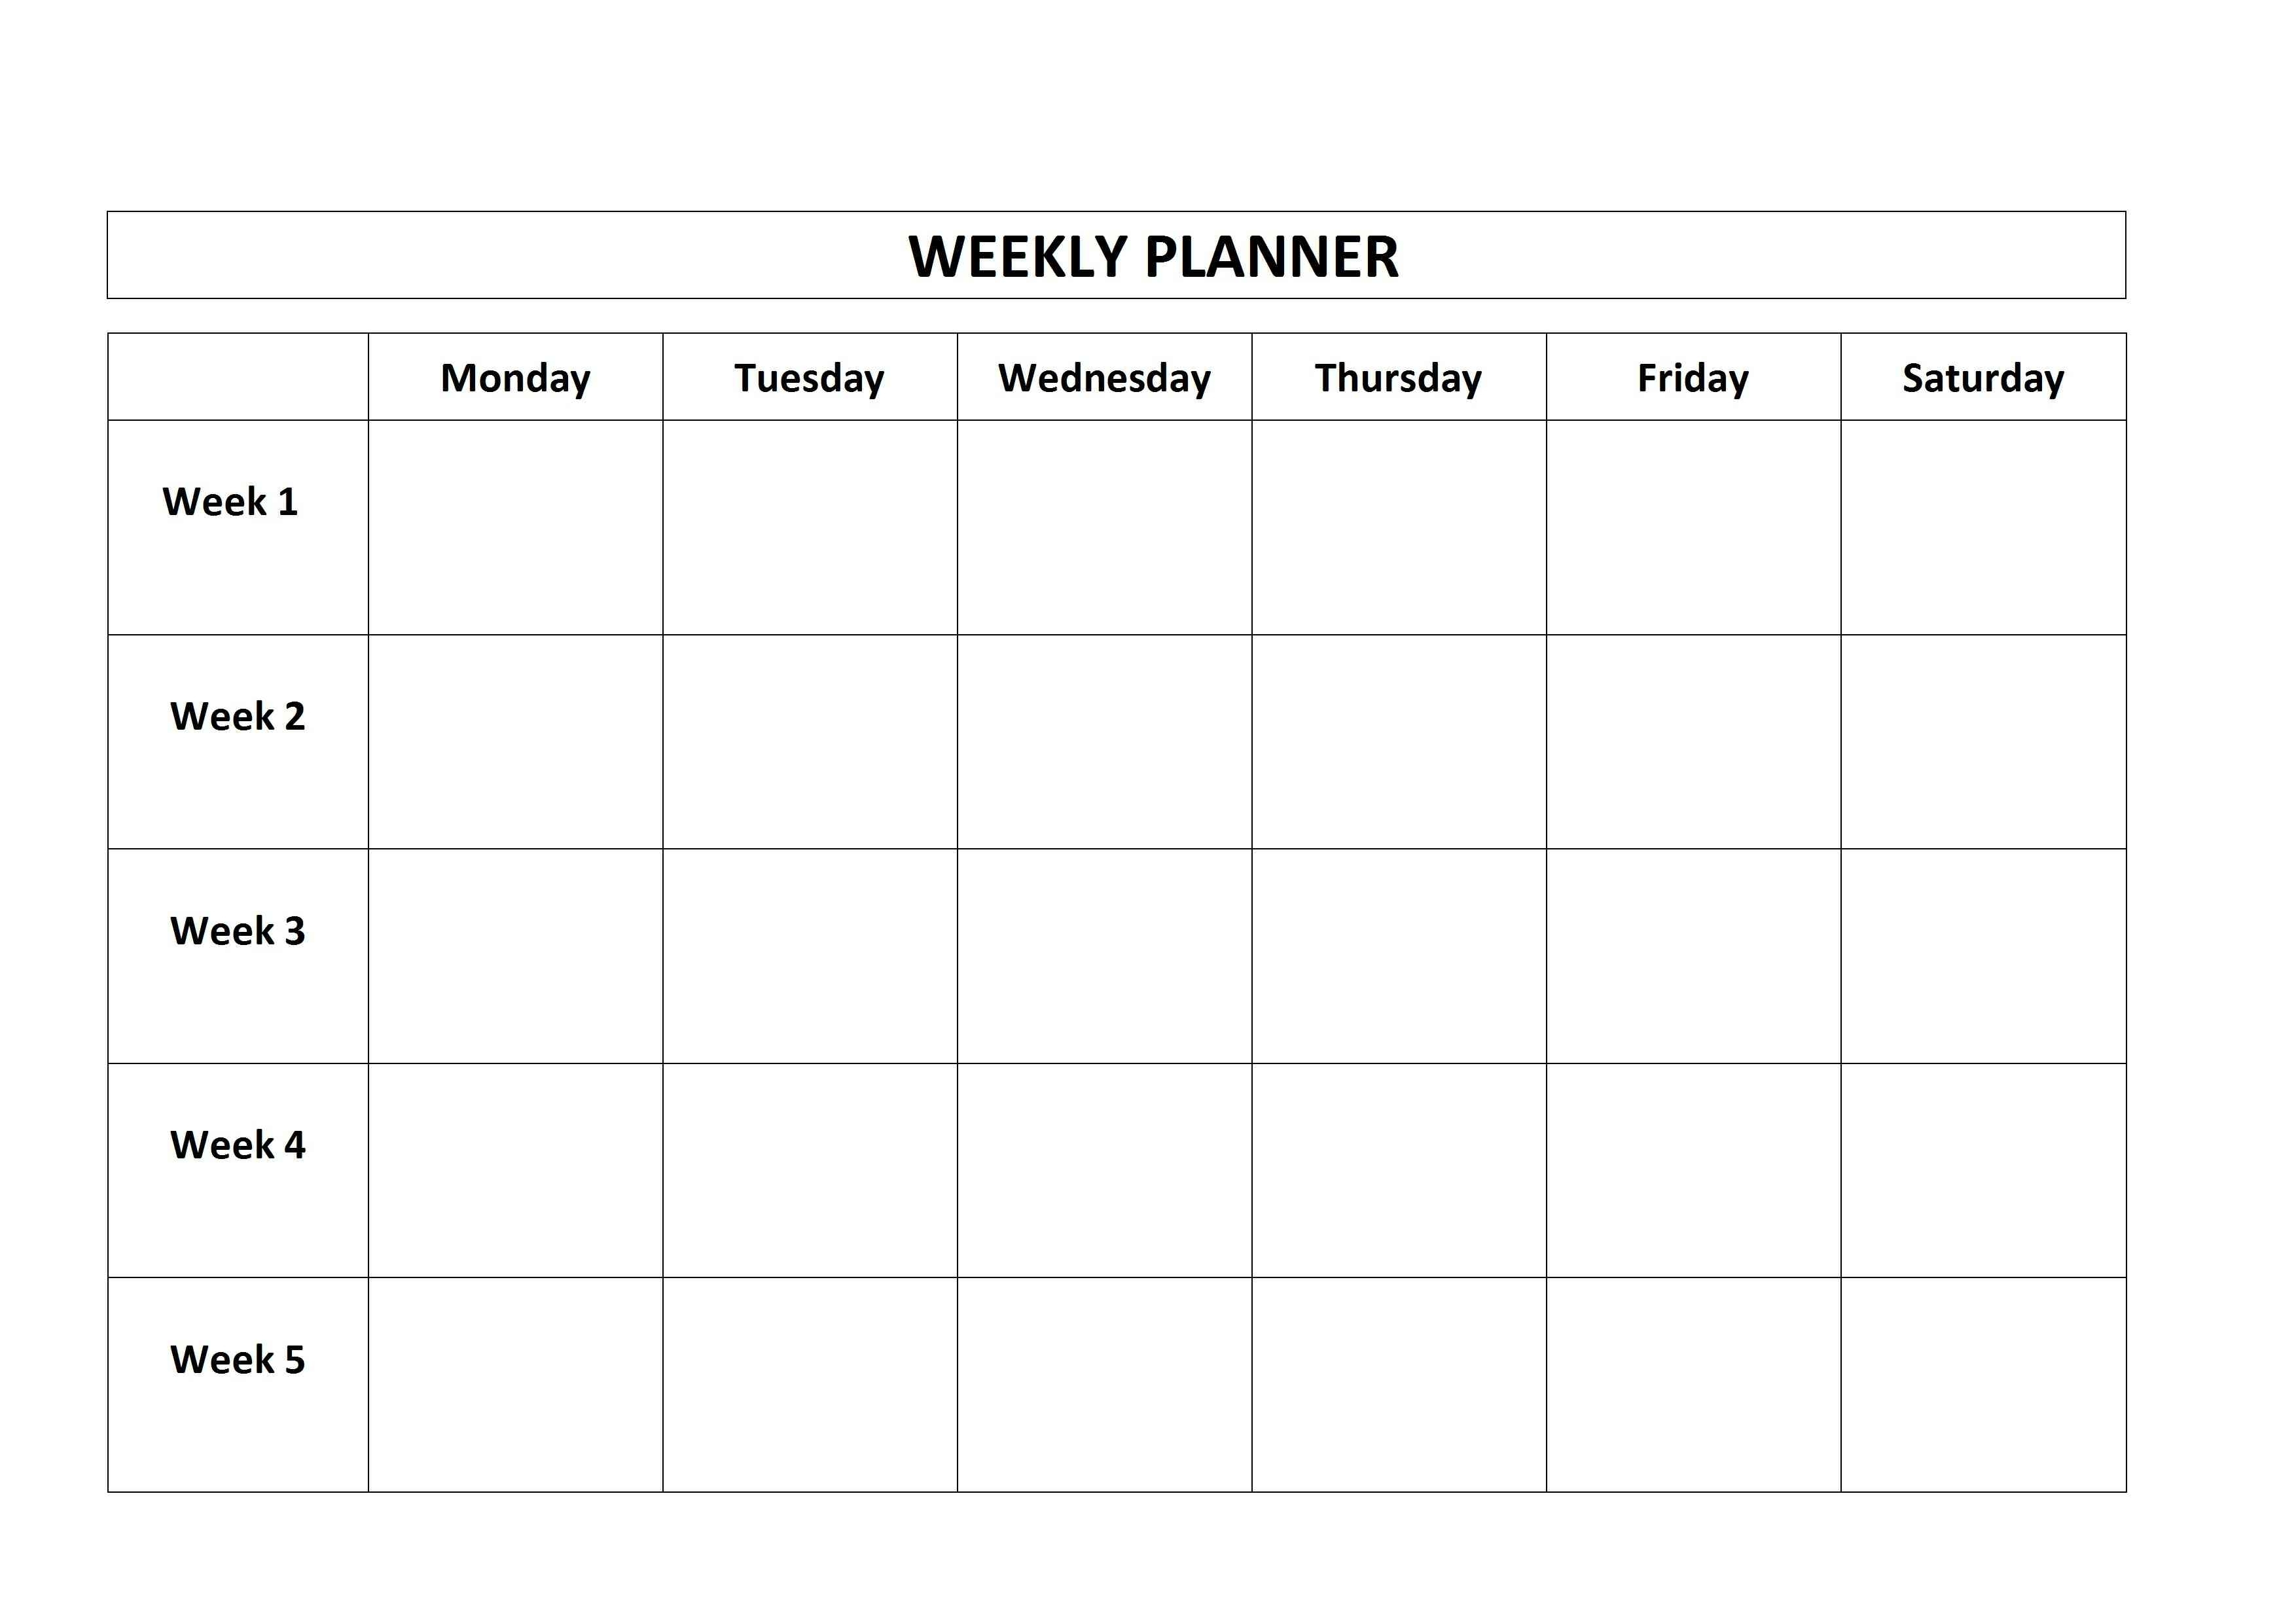 022 Two Week Calendar Template Blank Baskan Idai Co Within Blanktwo with regard to Weekly Blank Calendar Monday Through Friday